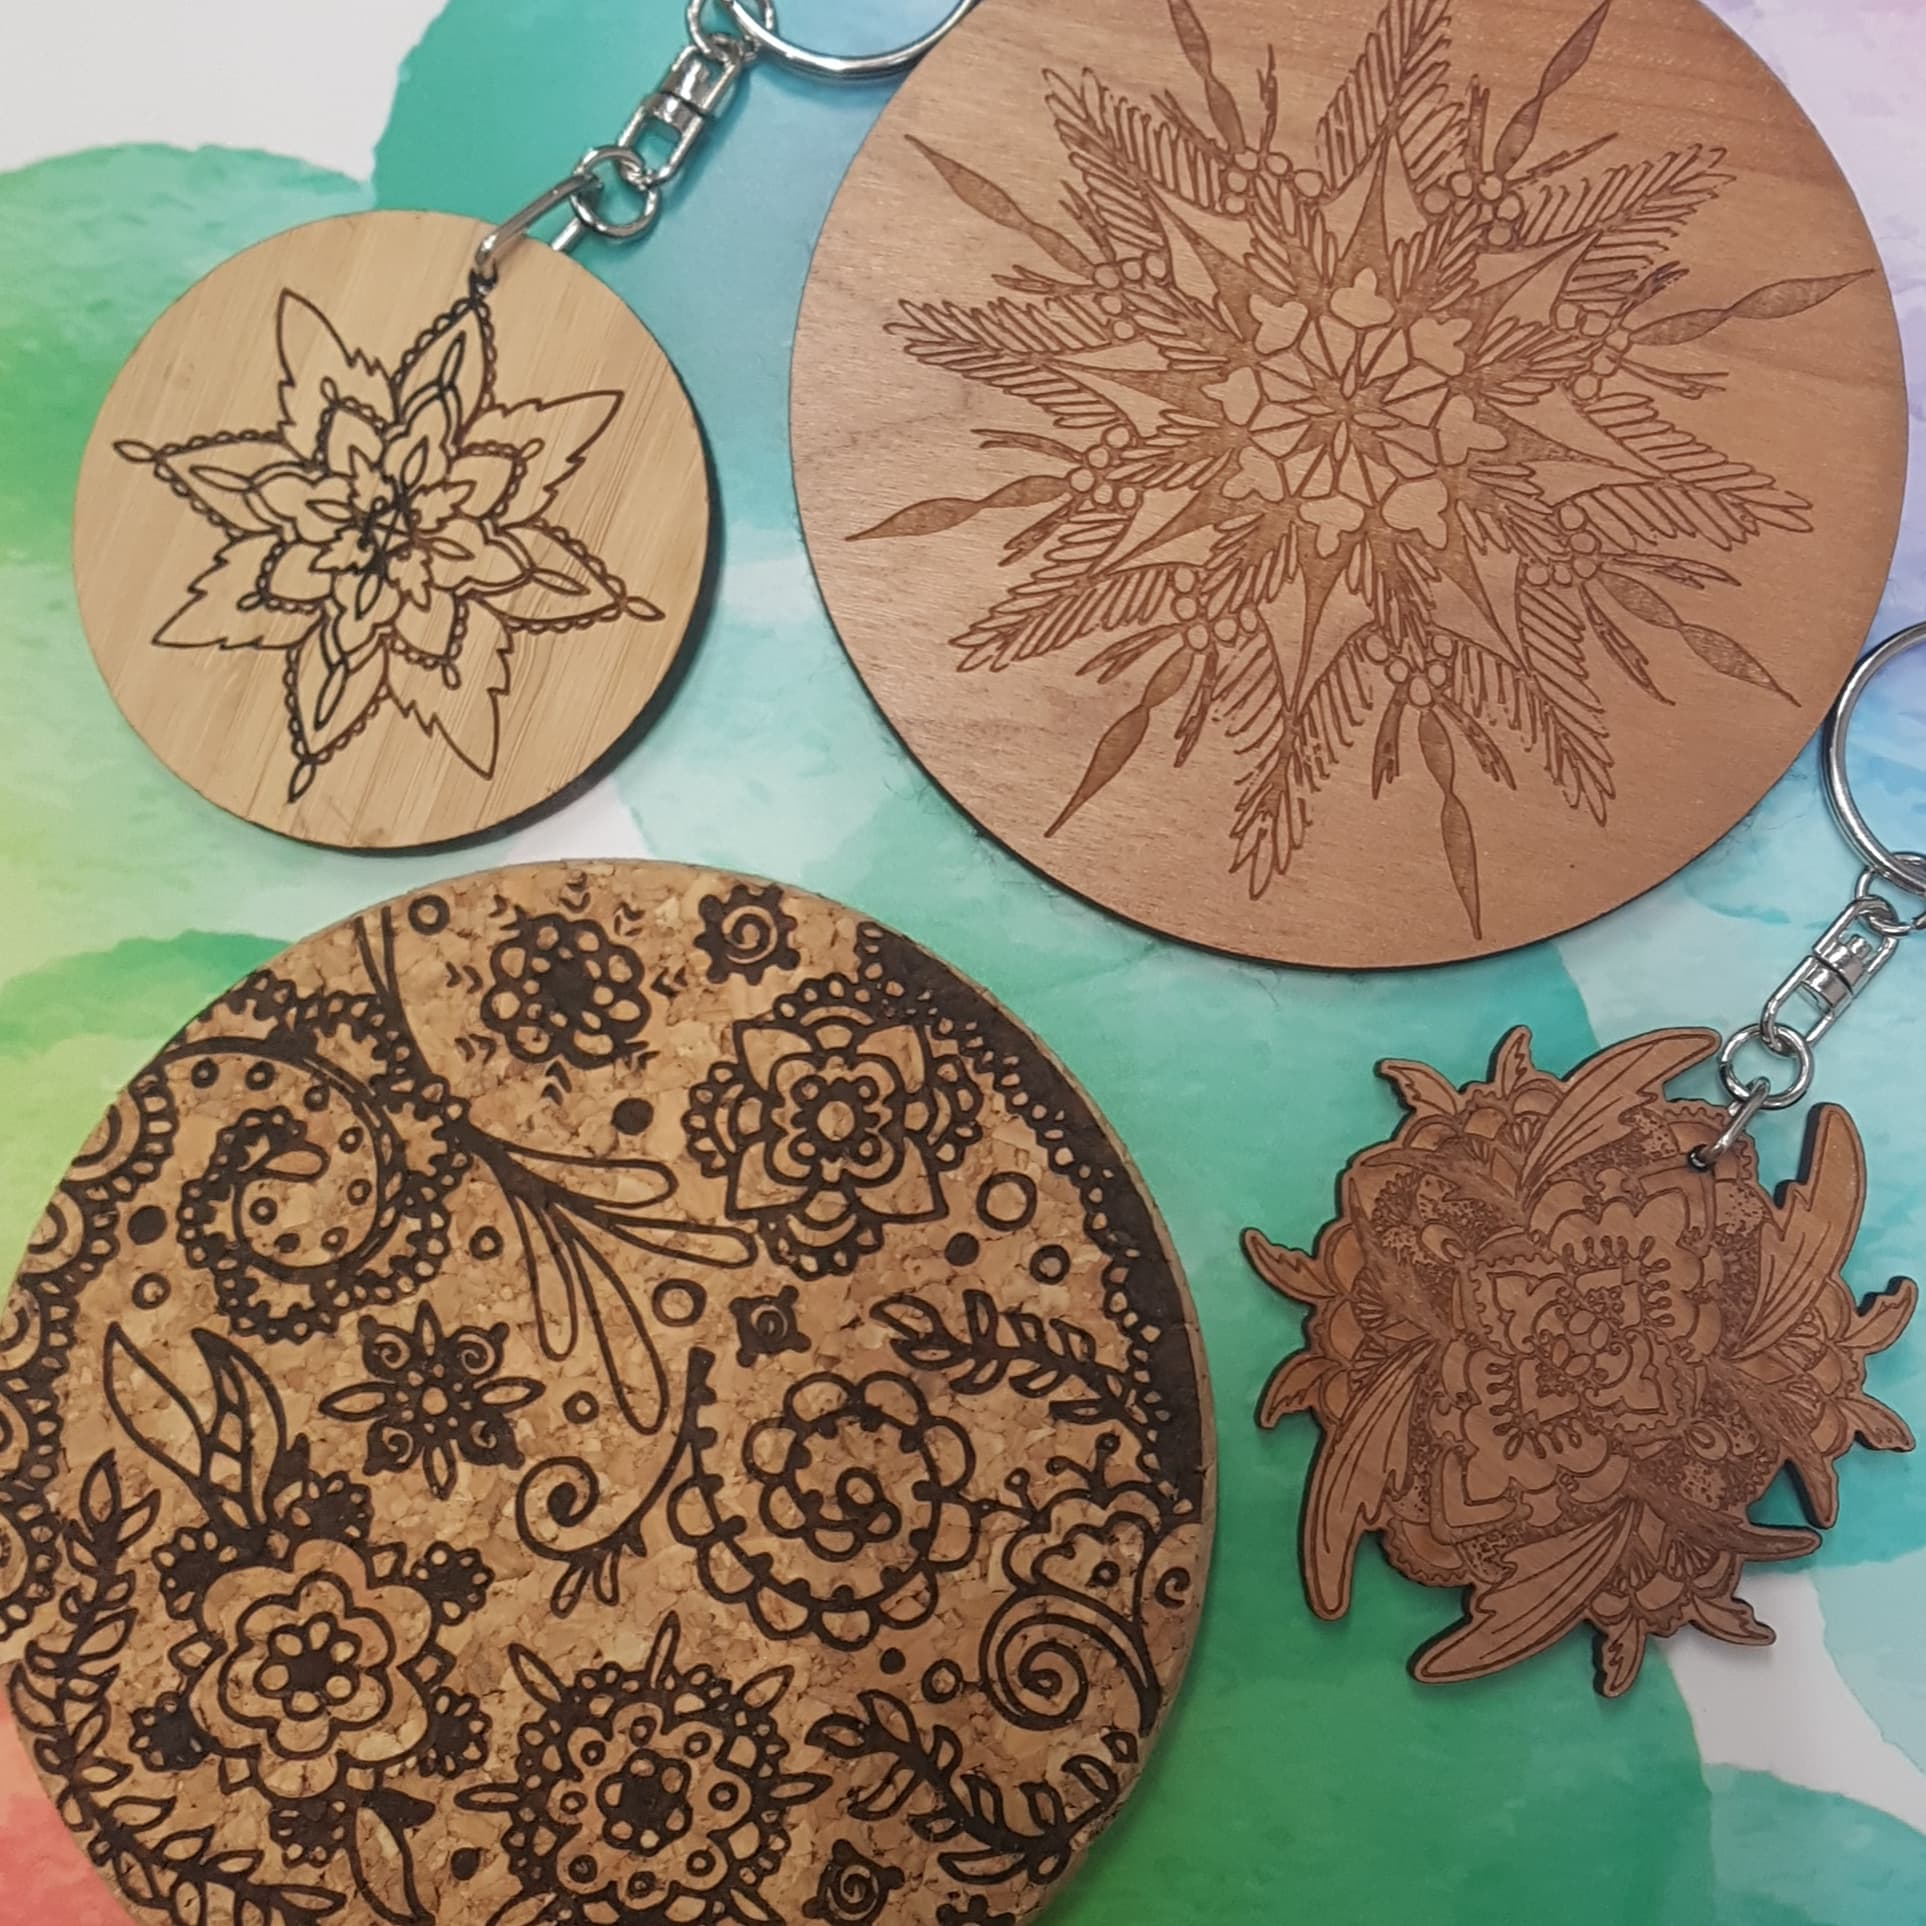 Laser cut keyrings and coasters from £4.99 in our Gallery Shop.